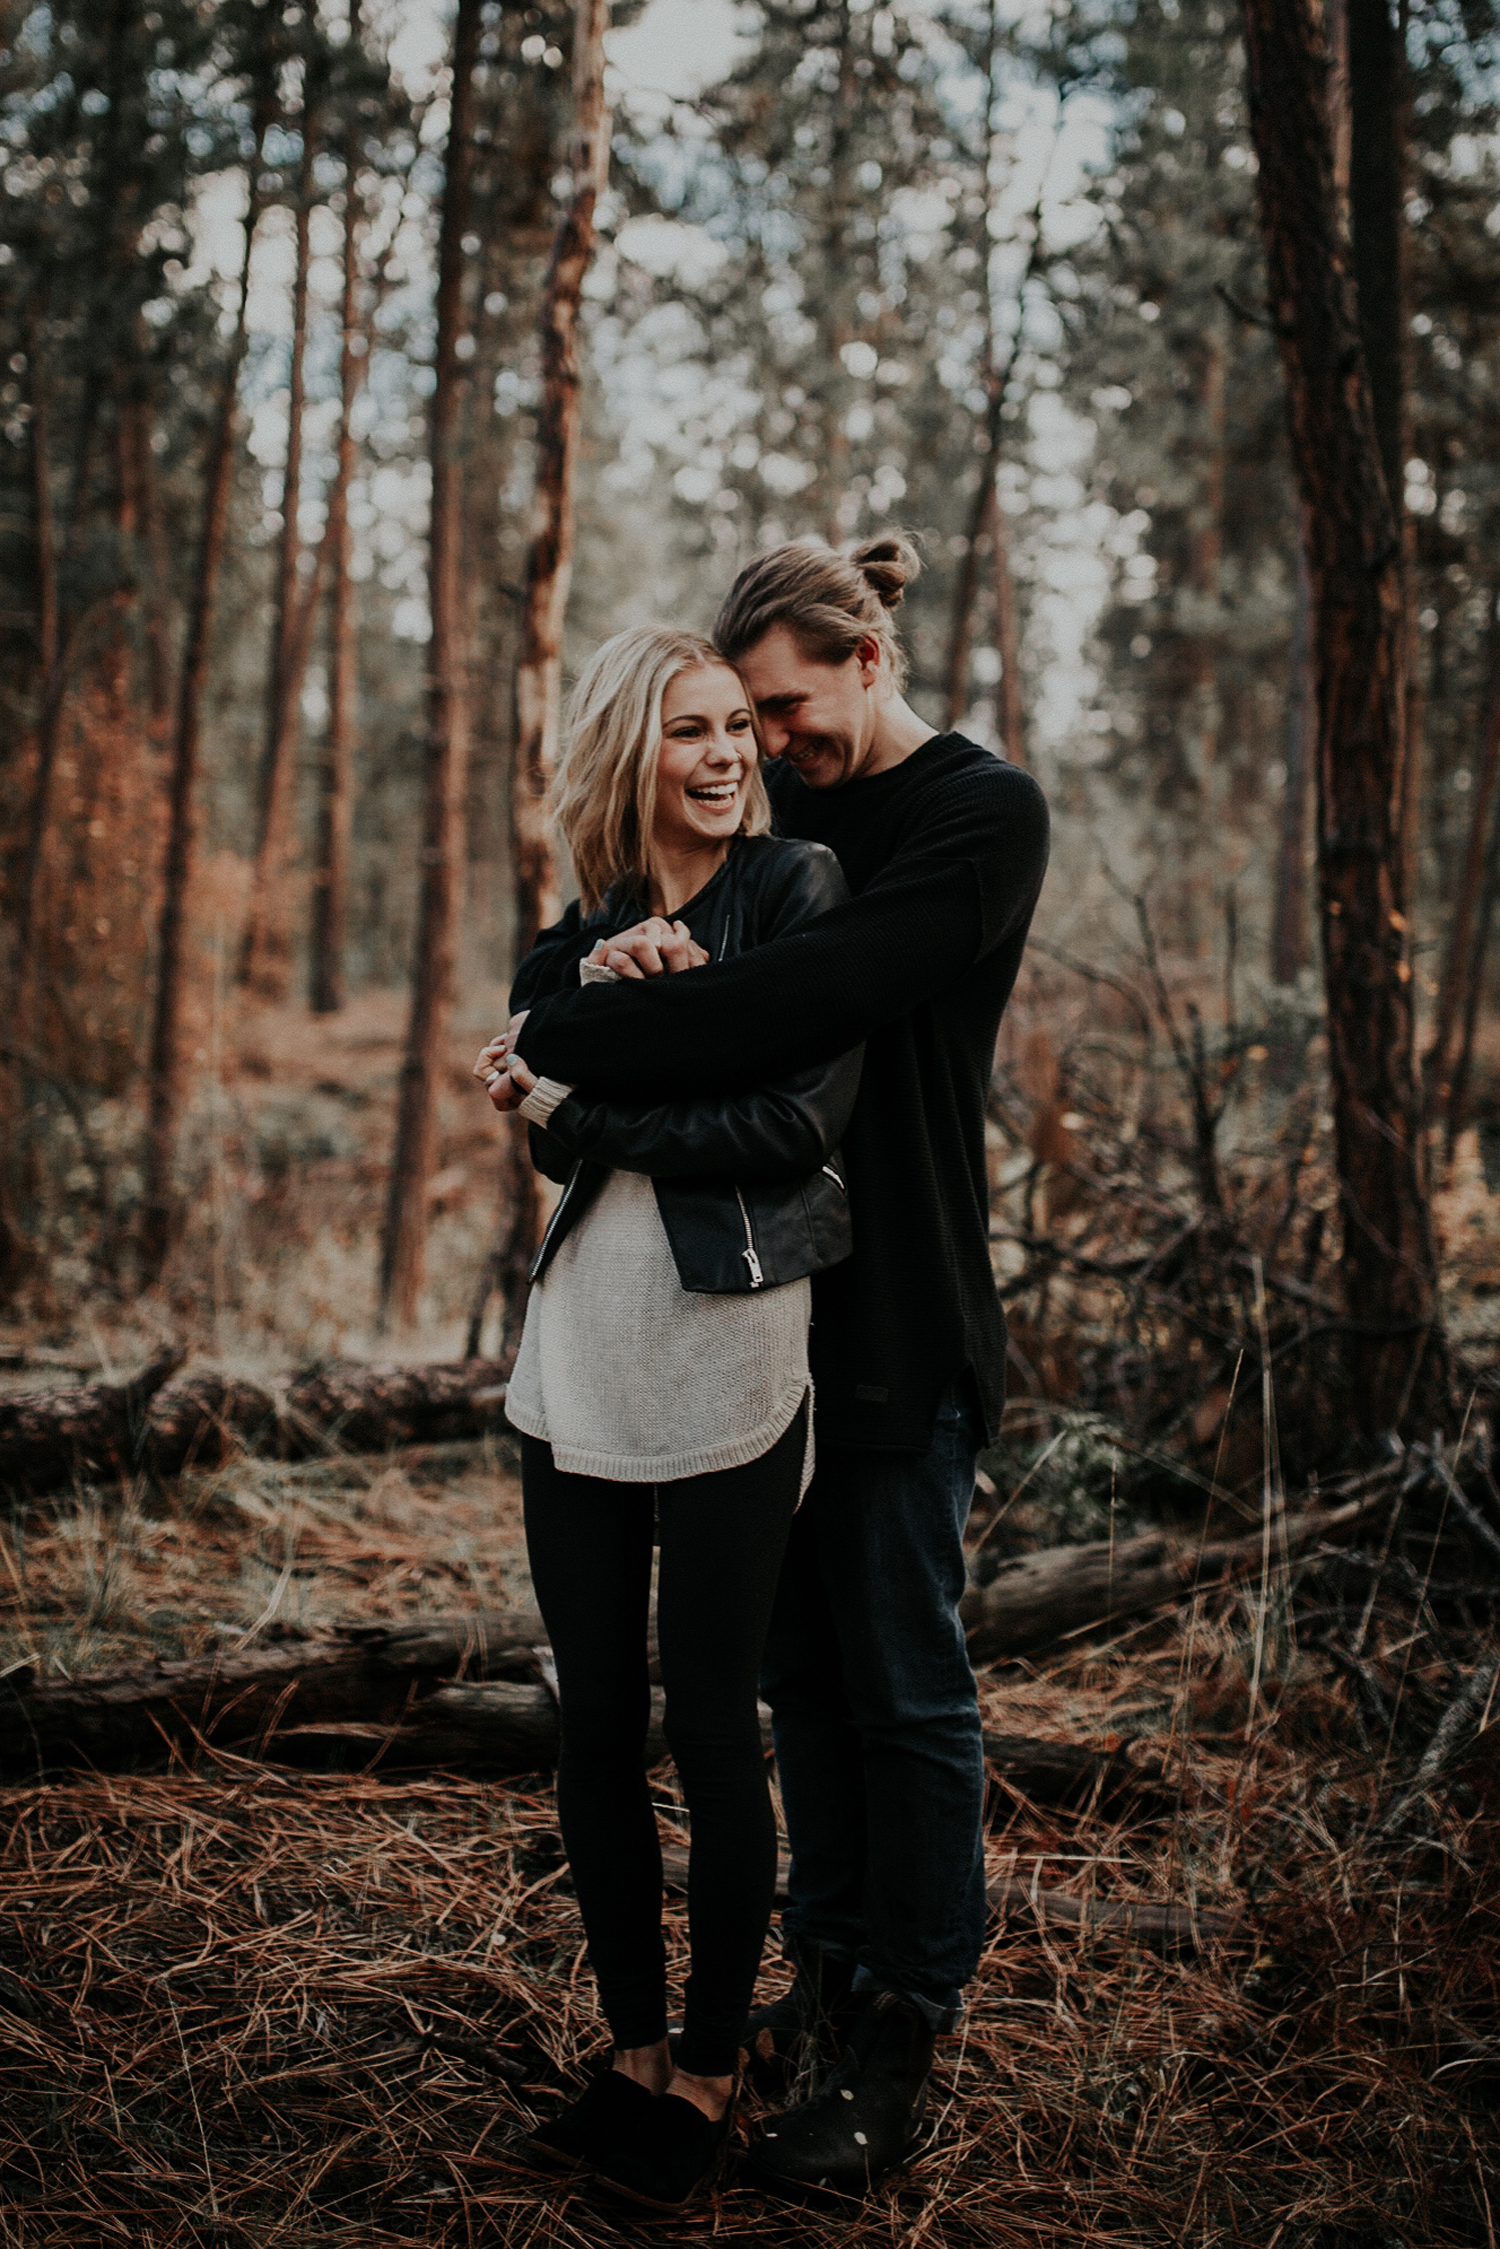 taylor olivia, couple photography, outdoor, love